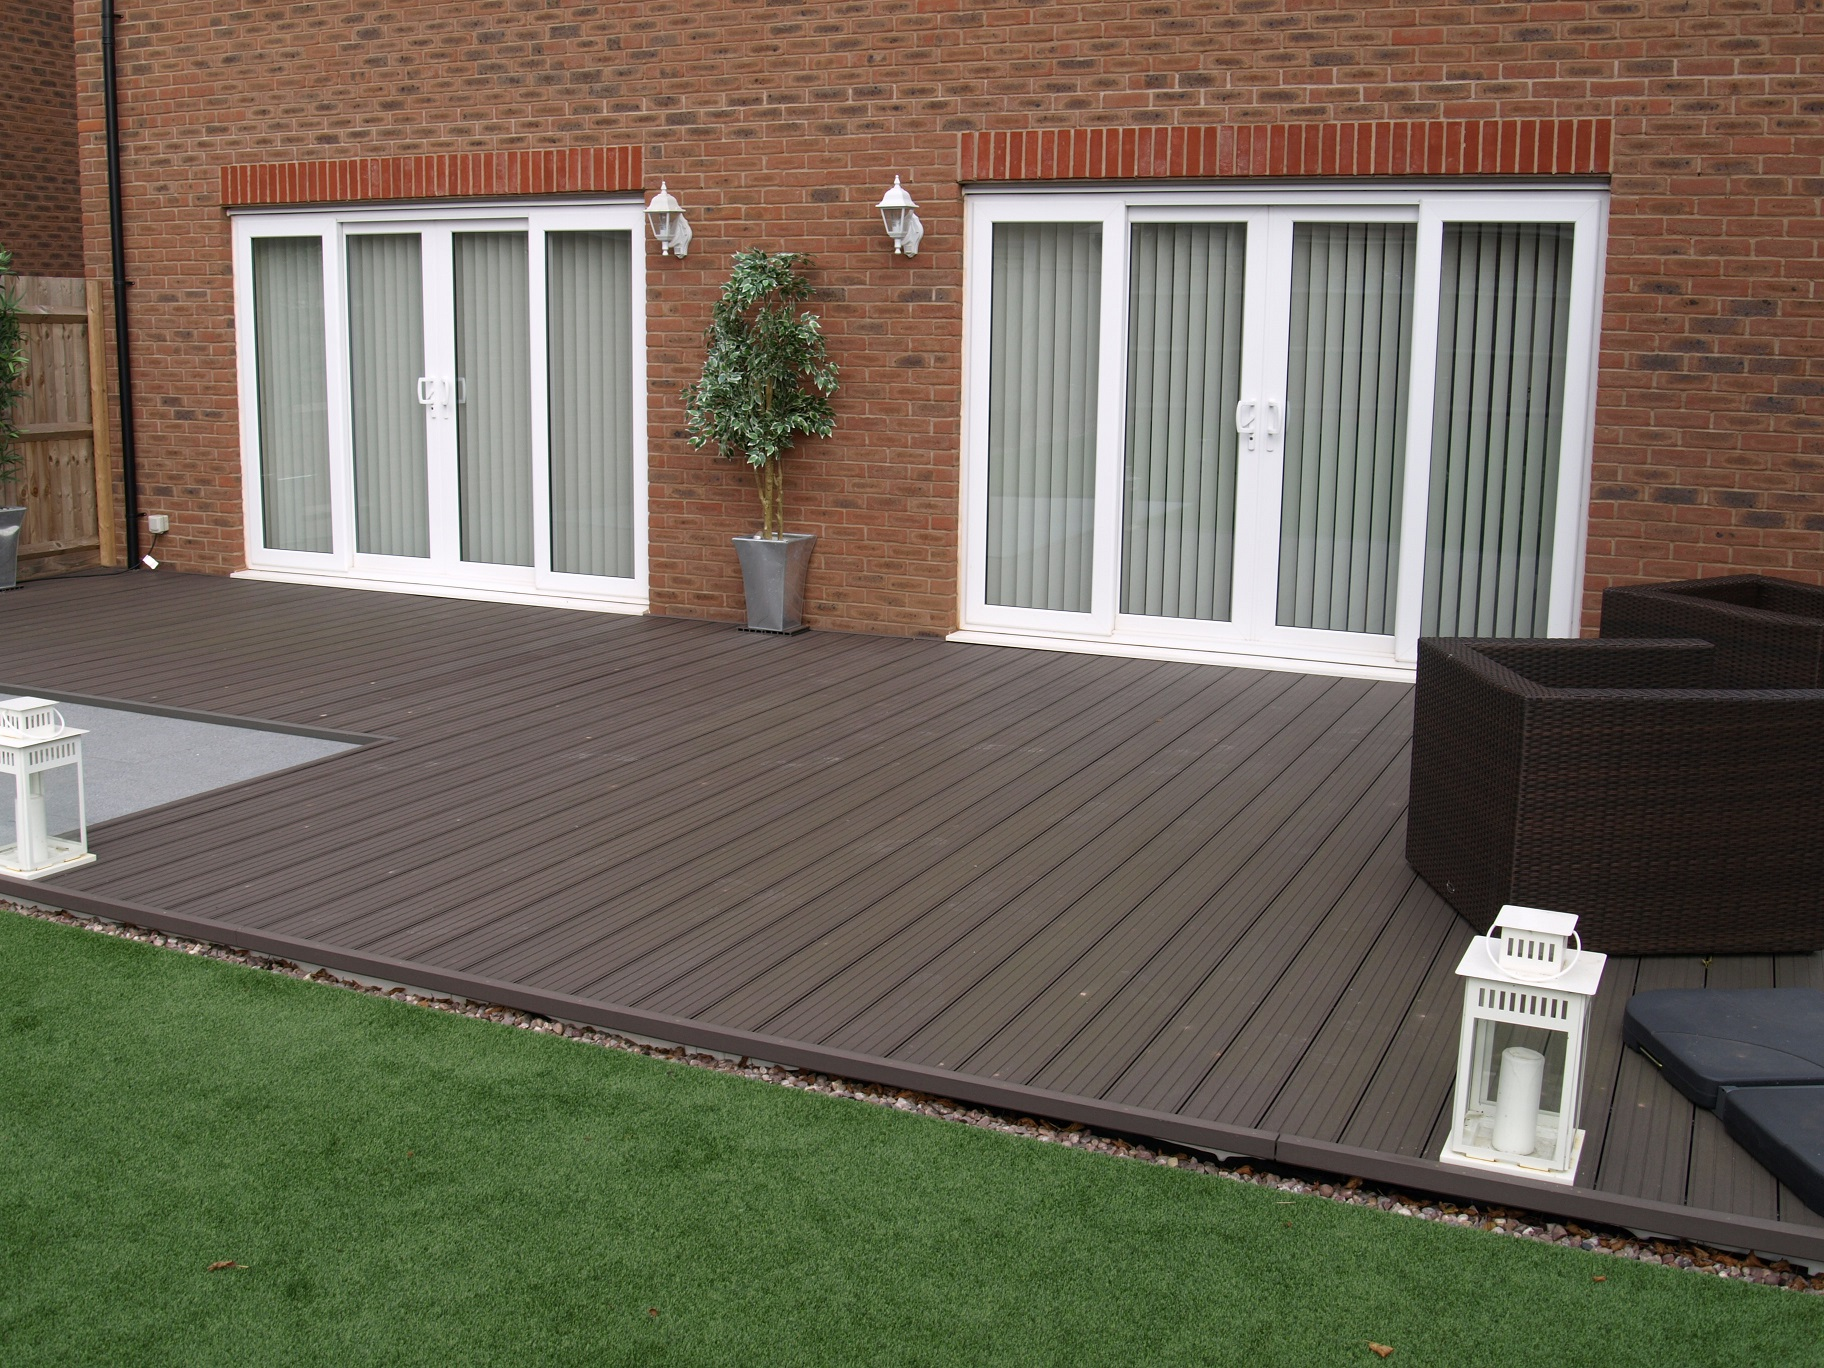 Garden decking designs for Garden decking images uk